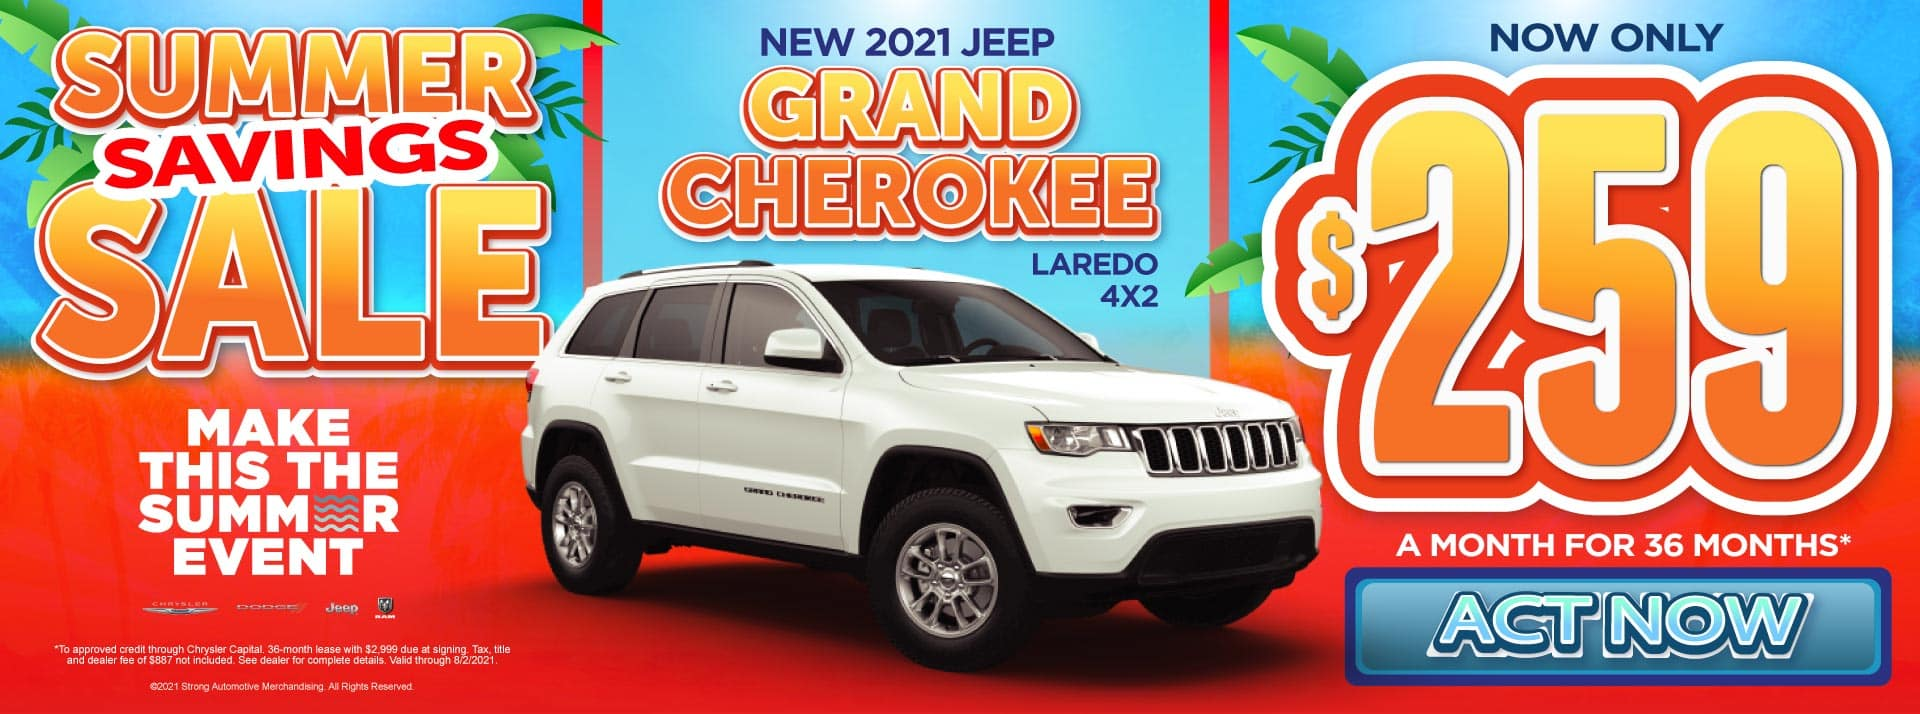 New 2021 Jeep Grand Cherokee - Now only $259 a month for 36 months - Act Now